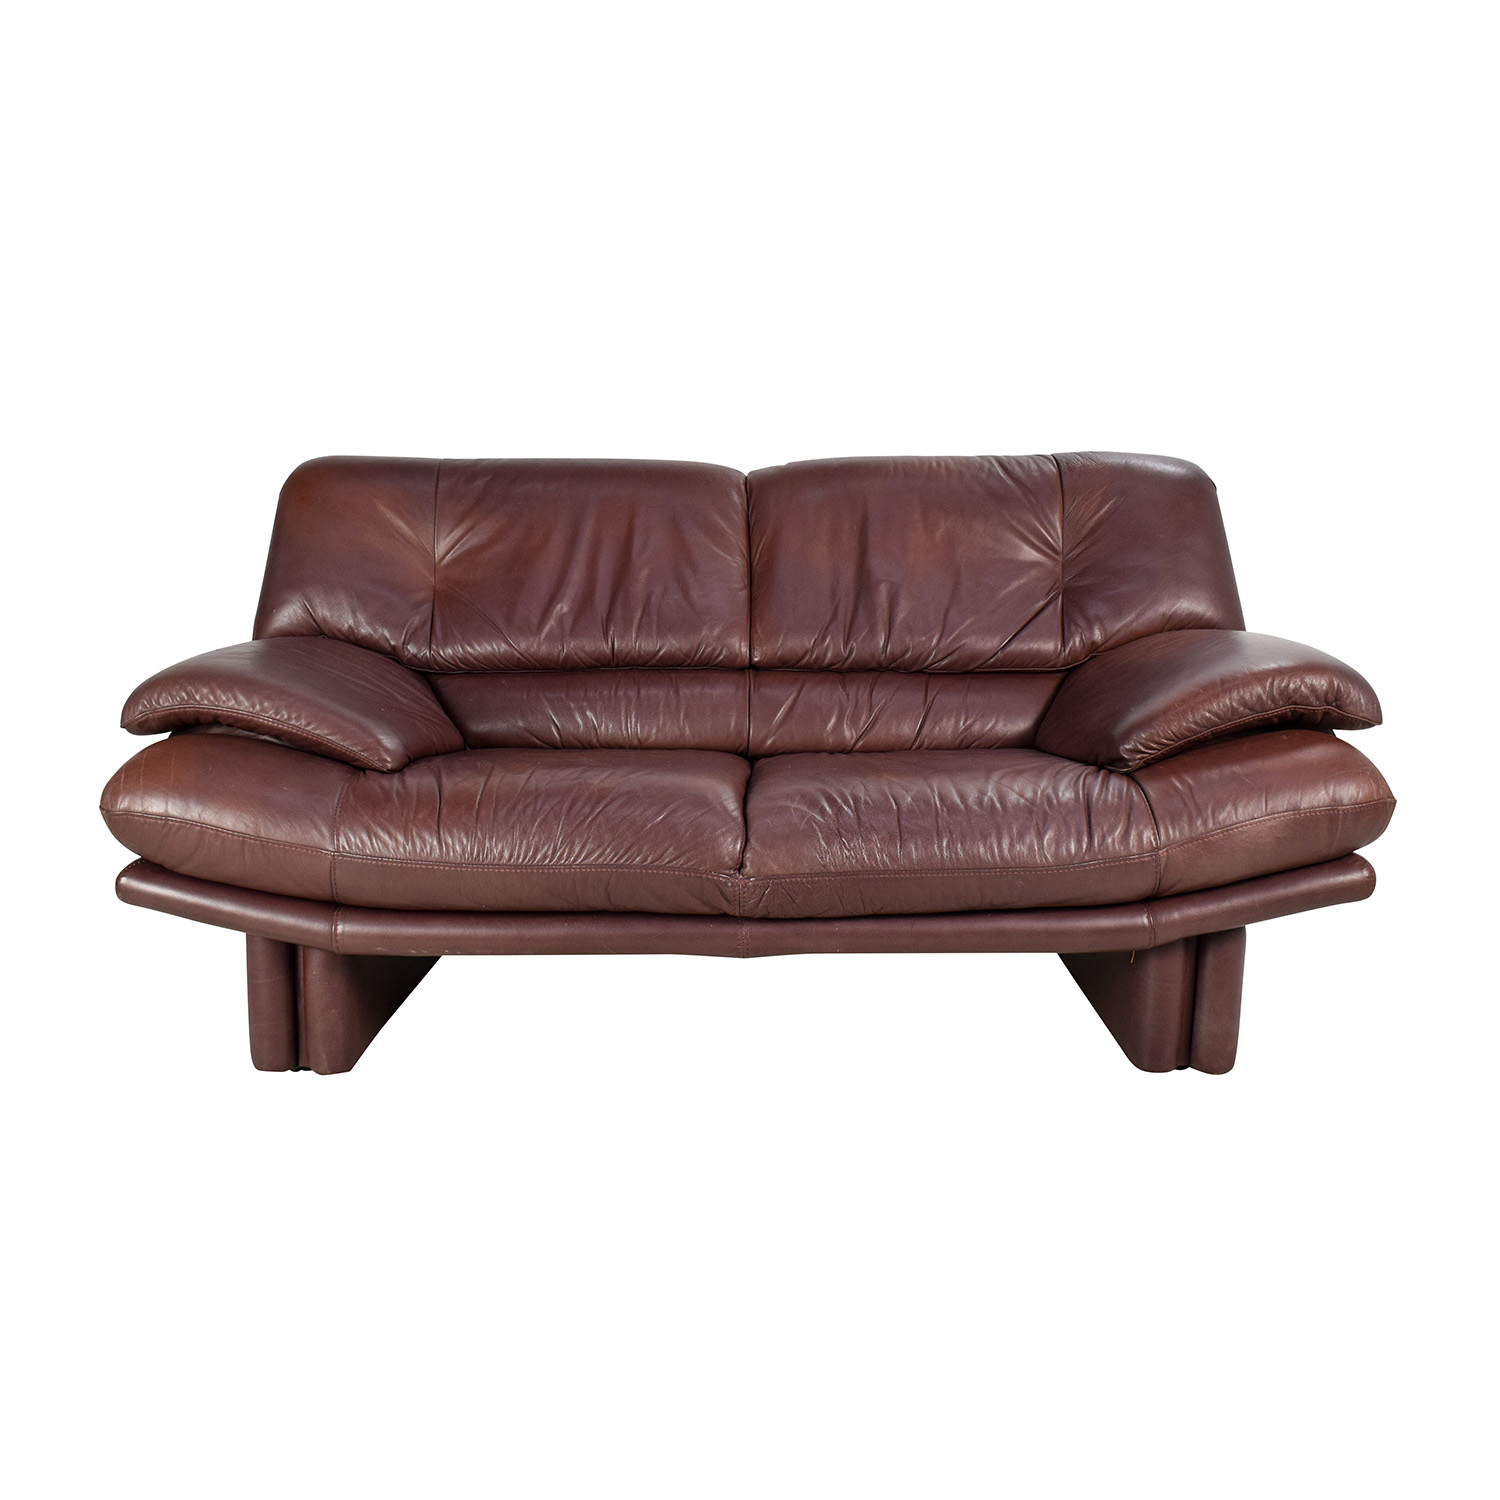 Sofa Set Second Sale In Hyderabad 67 Off Maurice Villency Maurice Villency Brown Leather